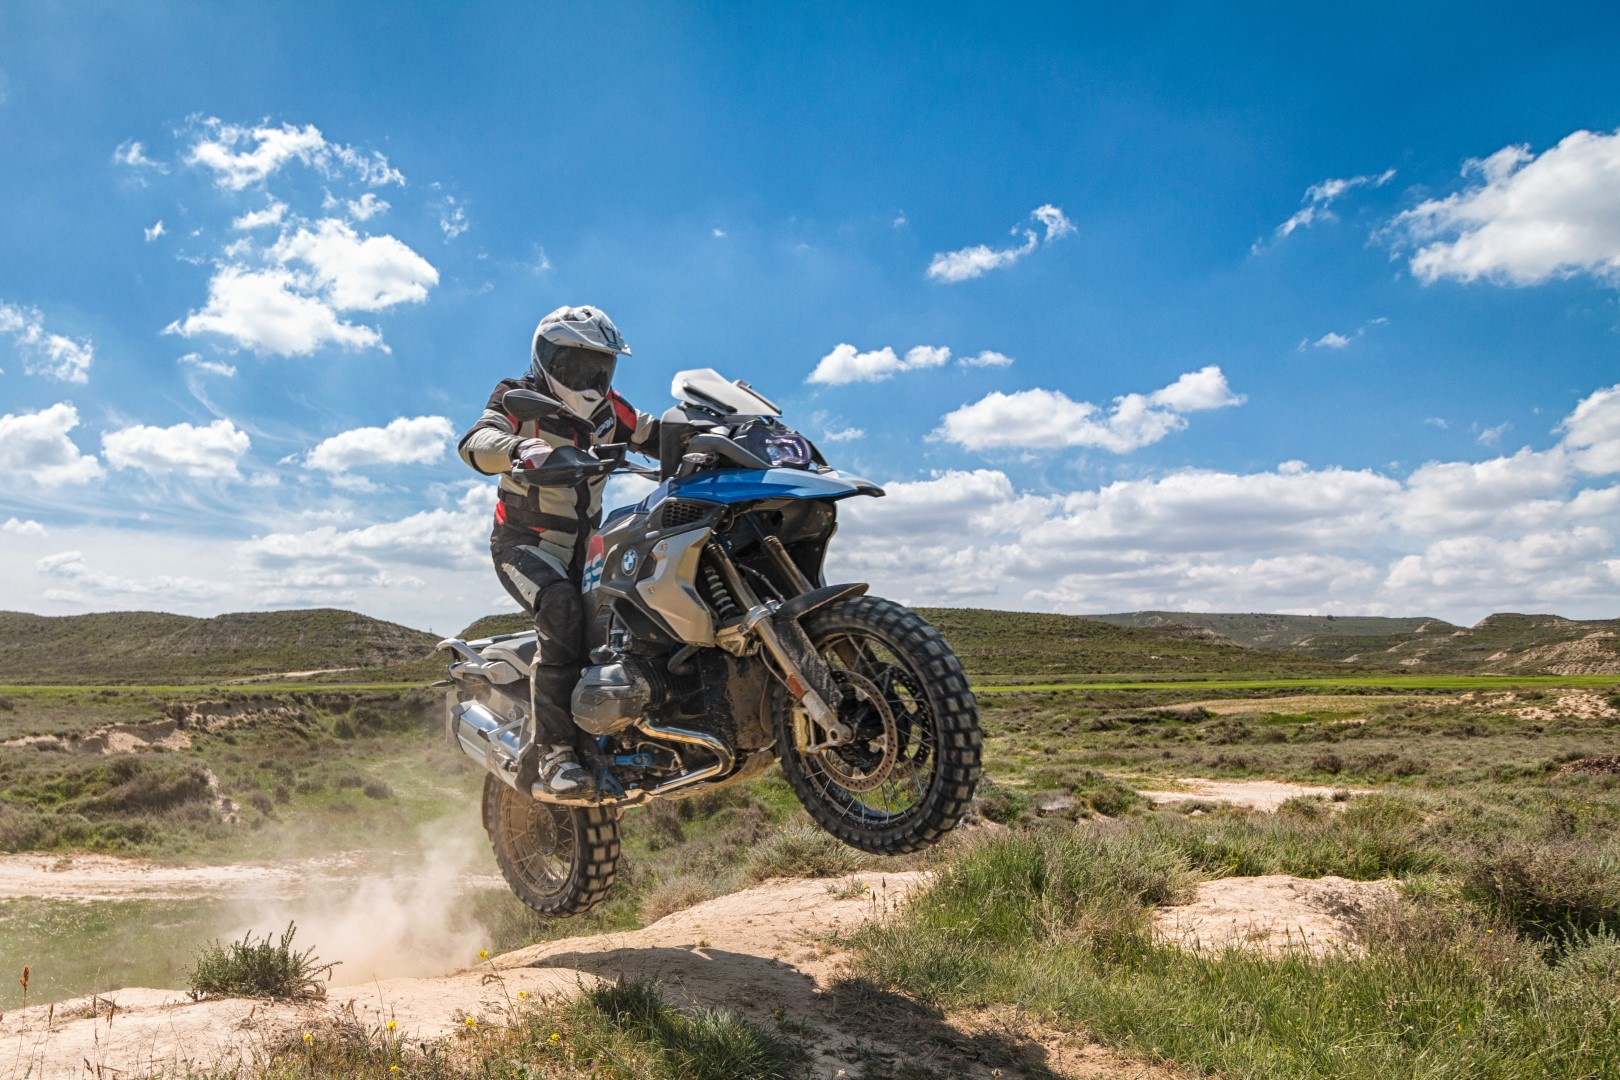 BMW R 1200 GS Ride, prueba off road por Los Monegros